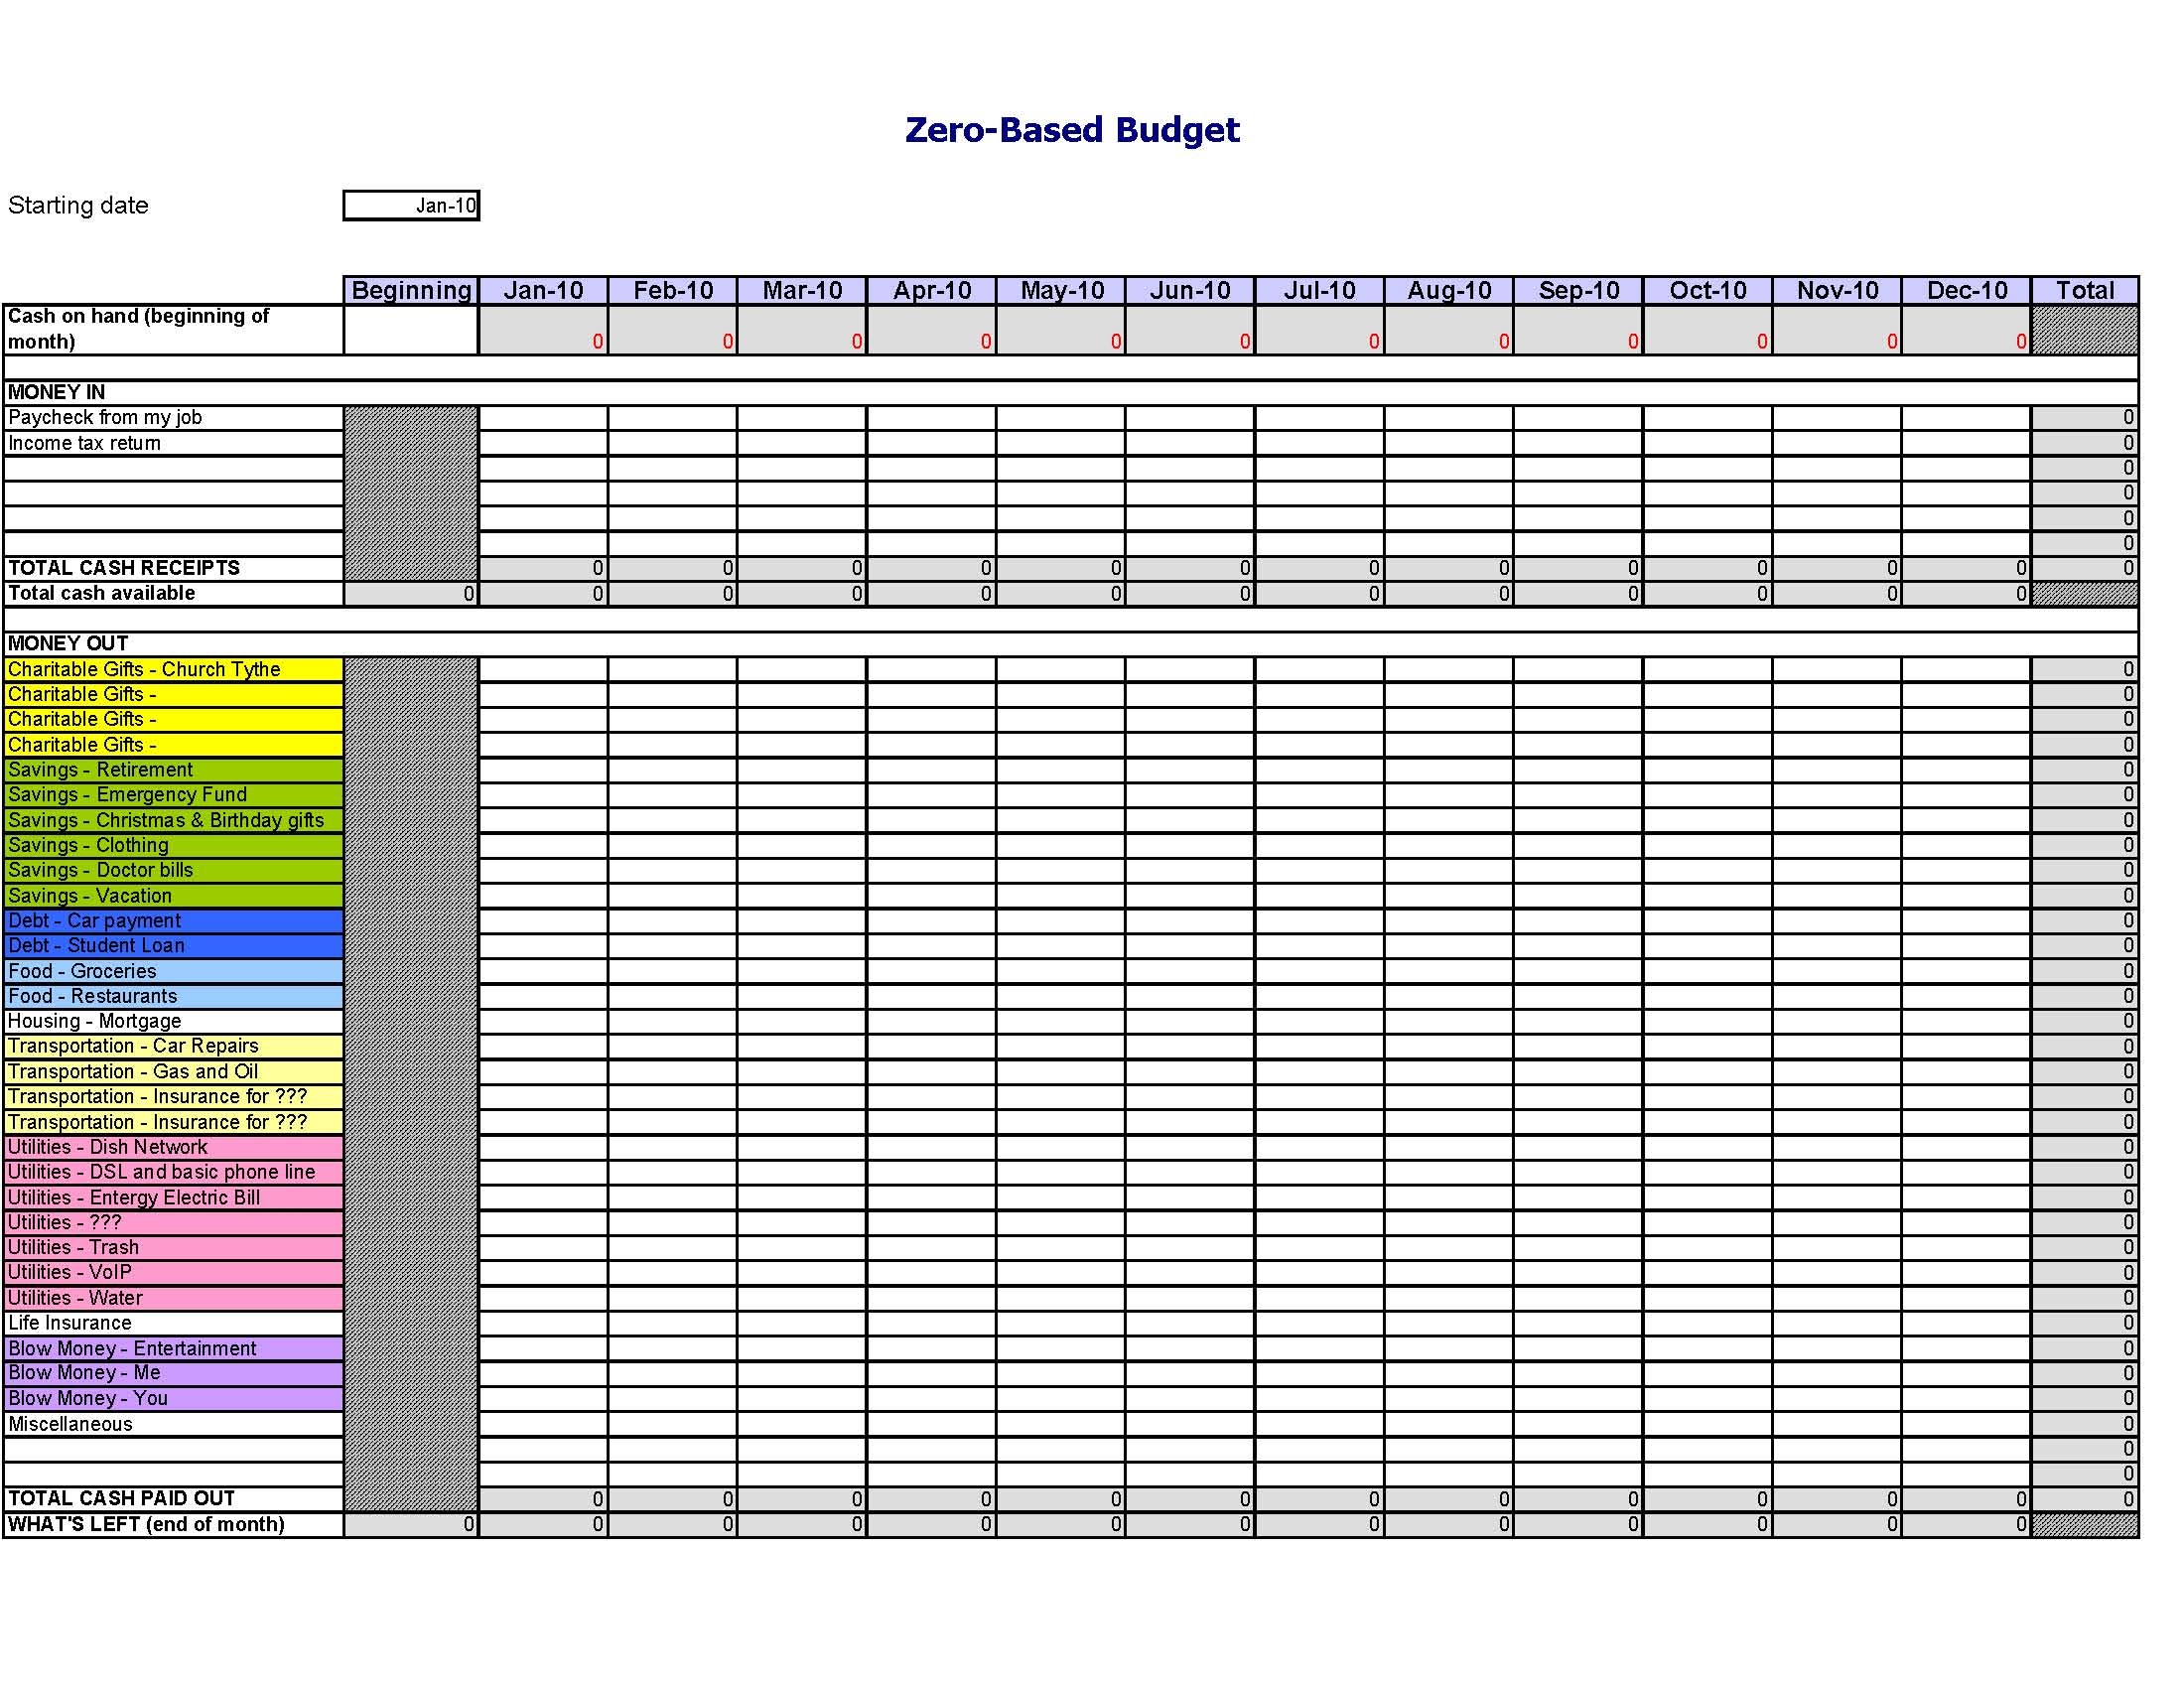 Excel Expense Tracker Template Expense Tracking Spreadsheet Template Spreadsheet Templates for Busines Spreadsheet Templates for Busines Business Expense Tracking Spreadsheet Template